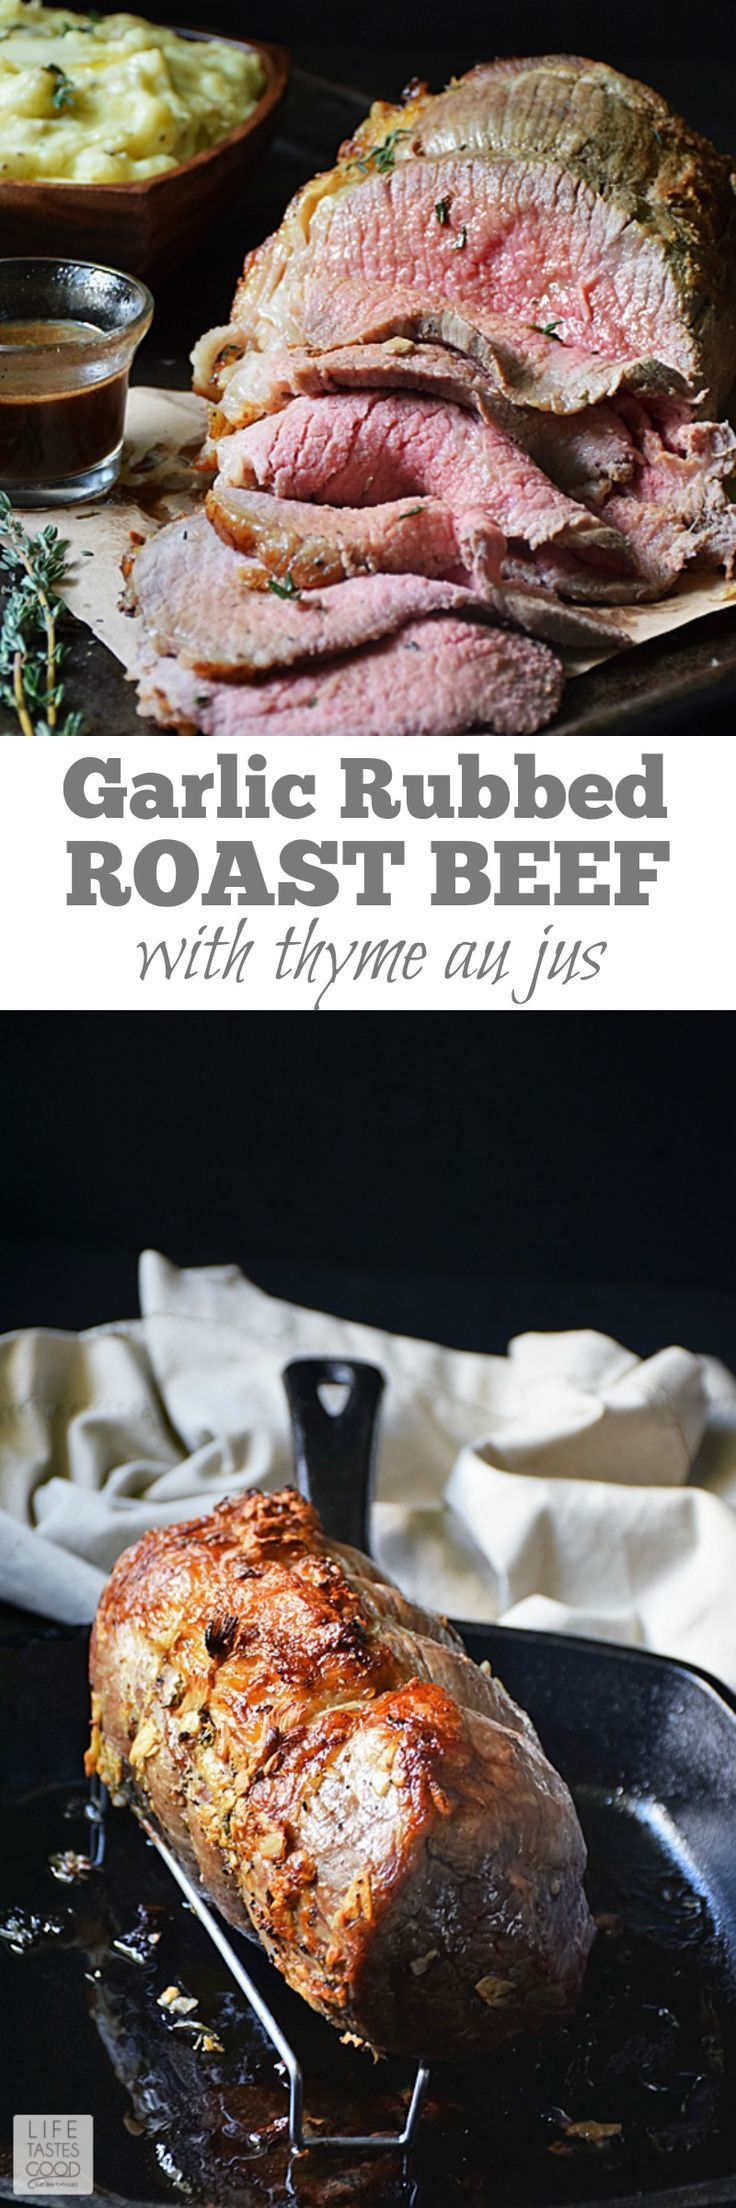 With a crisp garlicky crust on the outside and juicy inside, this Garlic Roast Beef is special enough for the holidays!